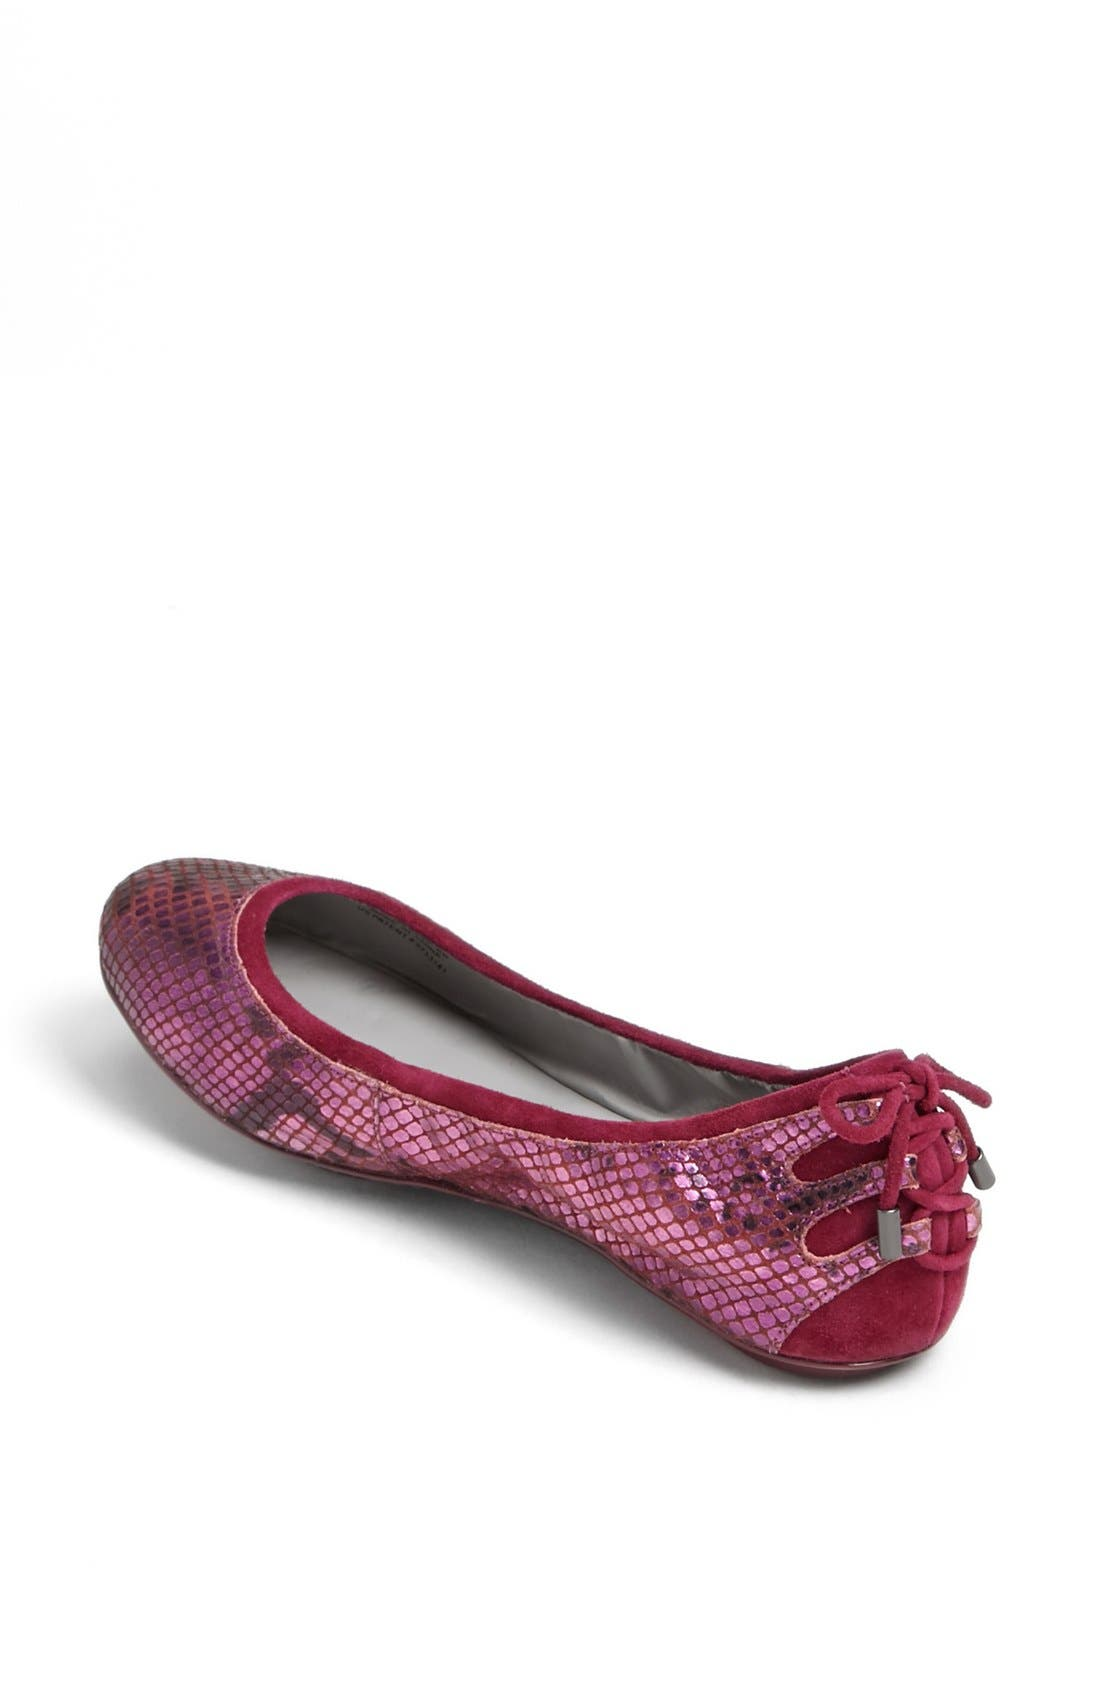 ,                             Maria Sharapova by Cole Haan 'Air Bacara' Flat,                             Alternate thumbnail 82, color,                             500